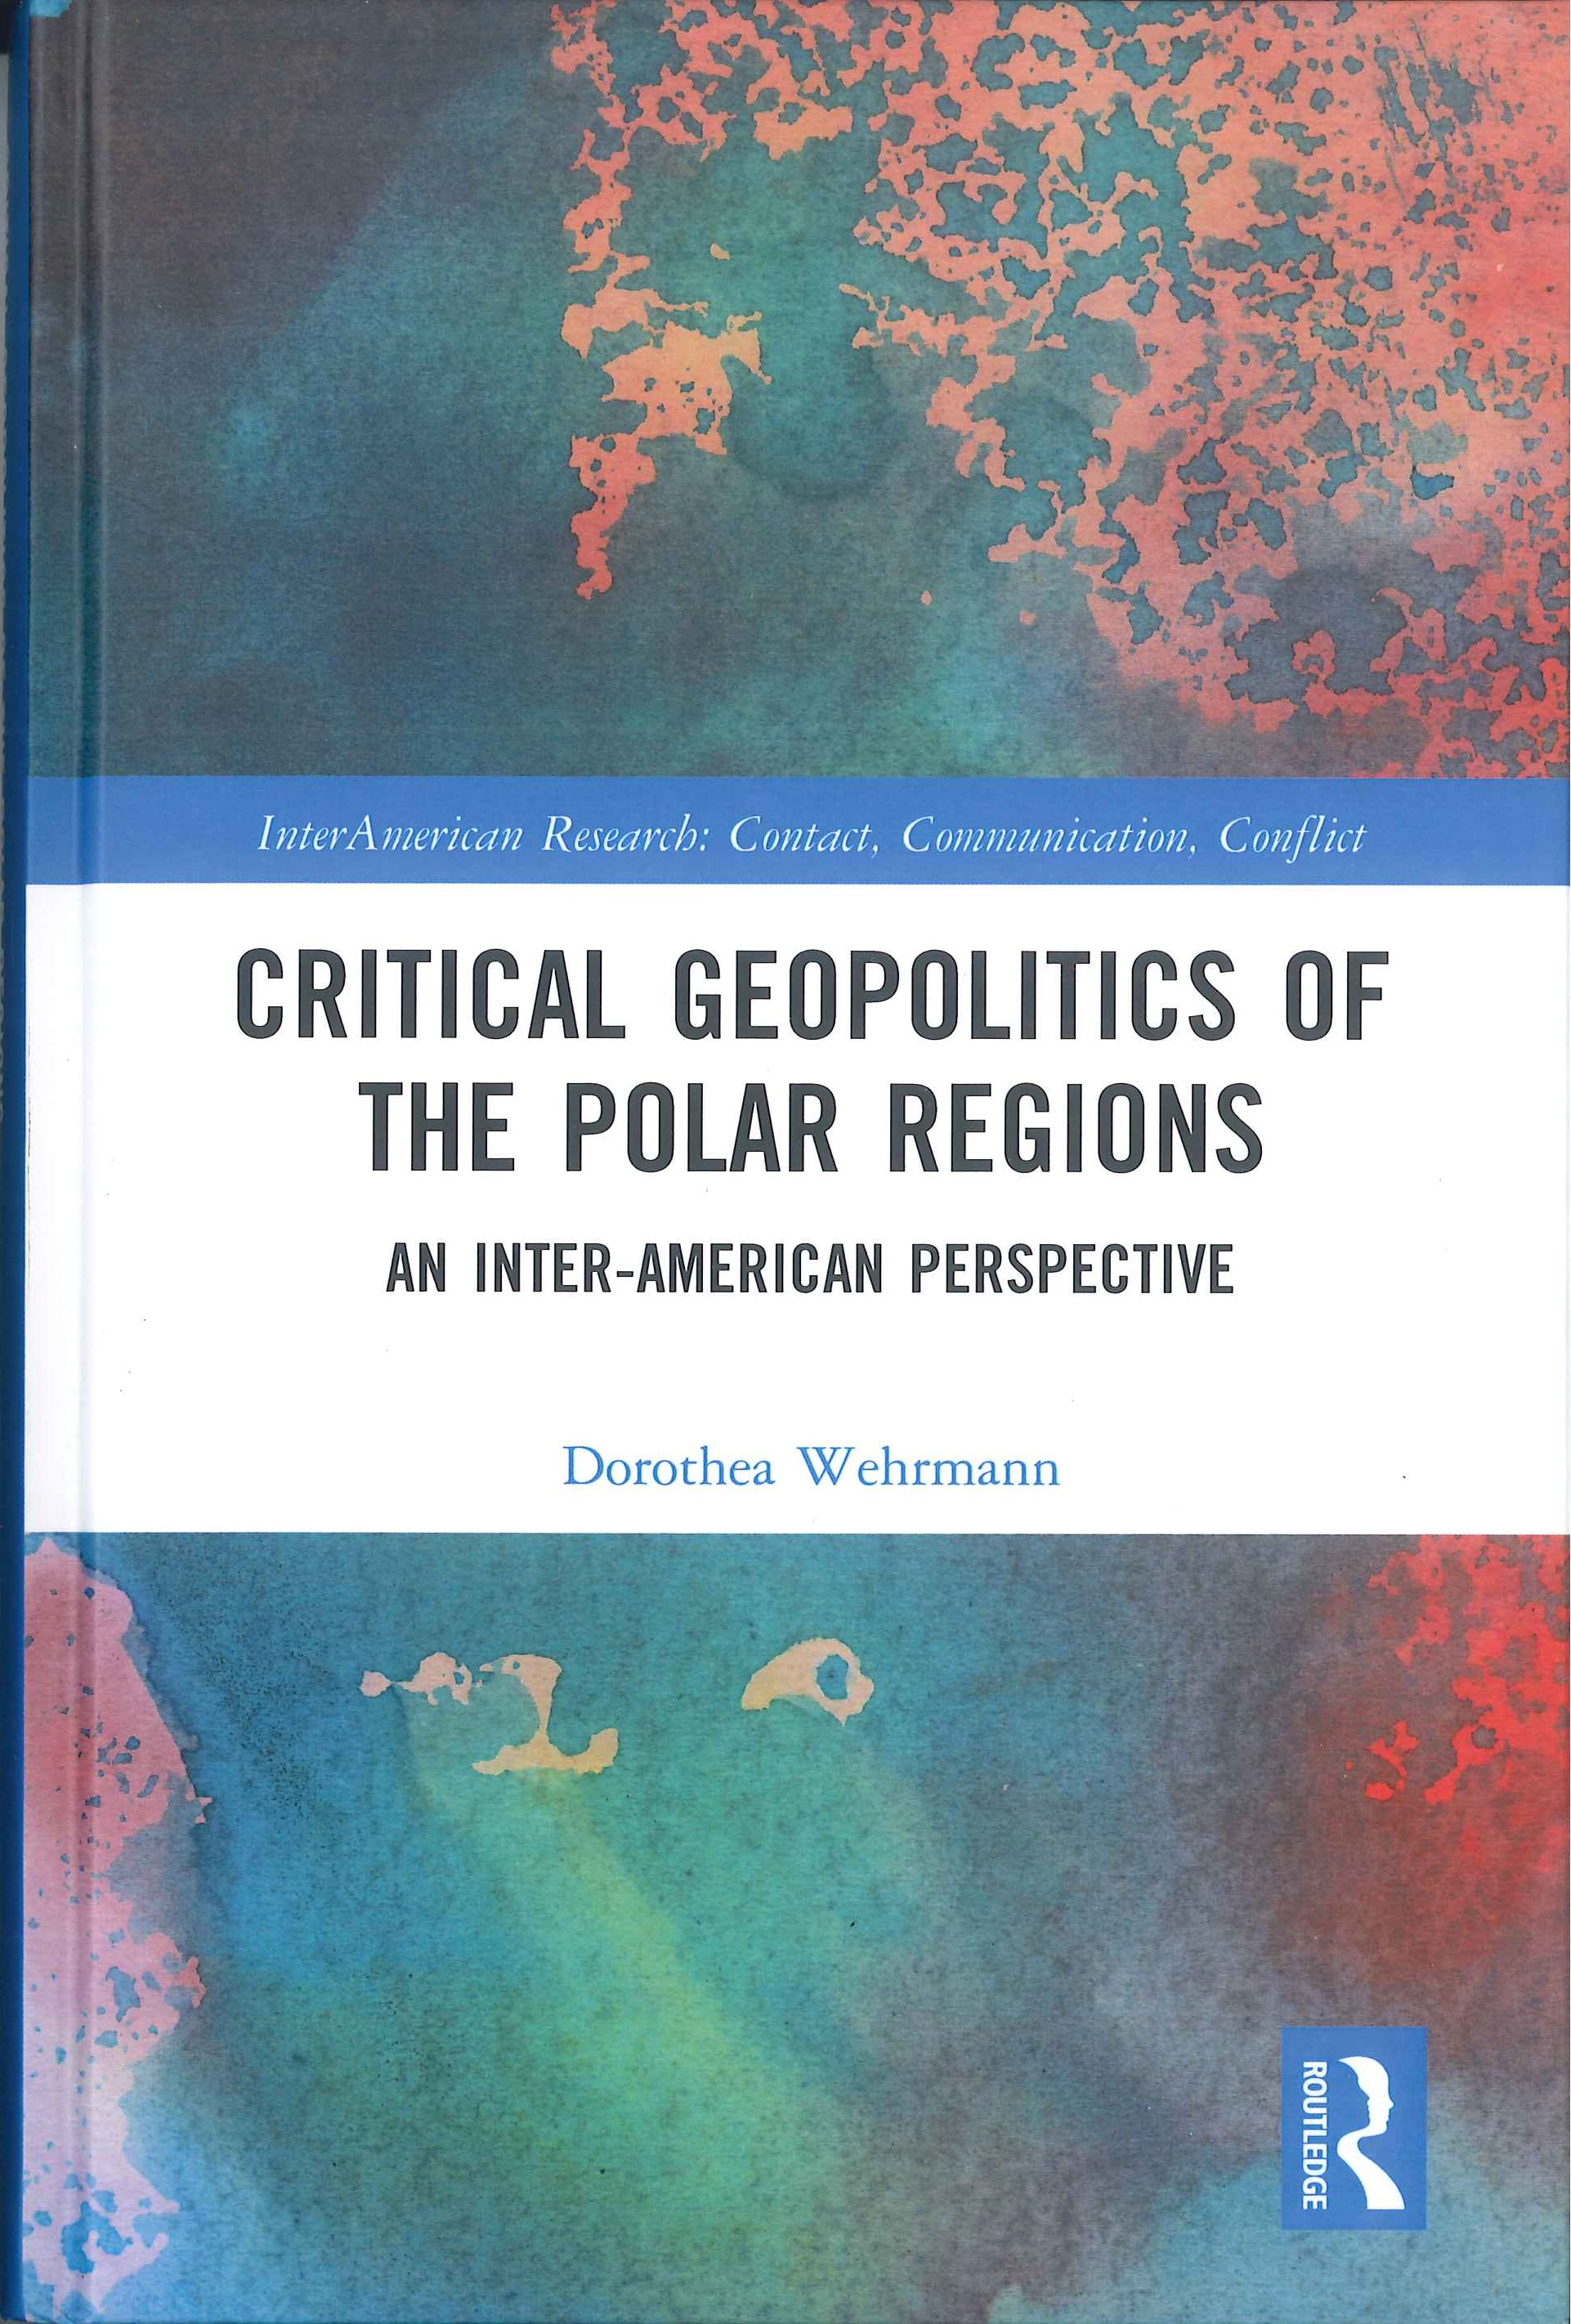 Critical geopolitics of the polar regions:an inter-American perspective